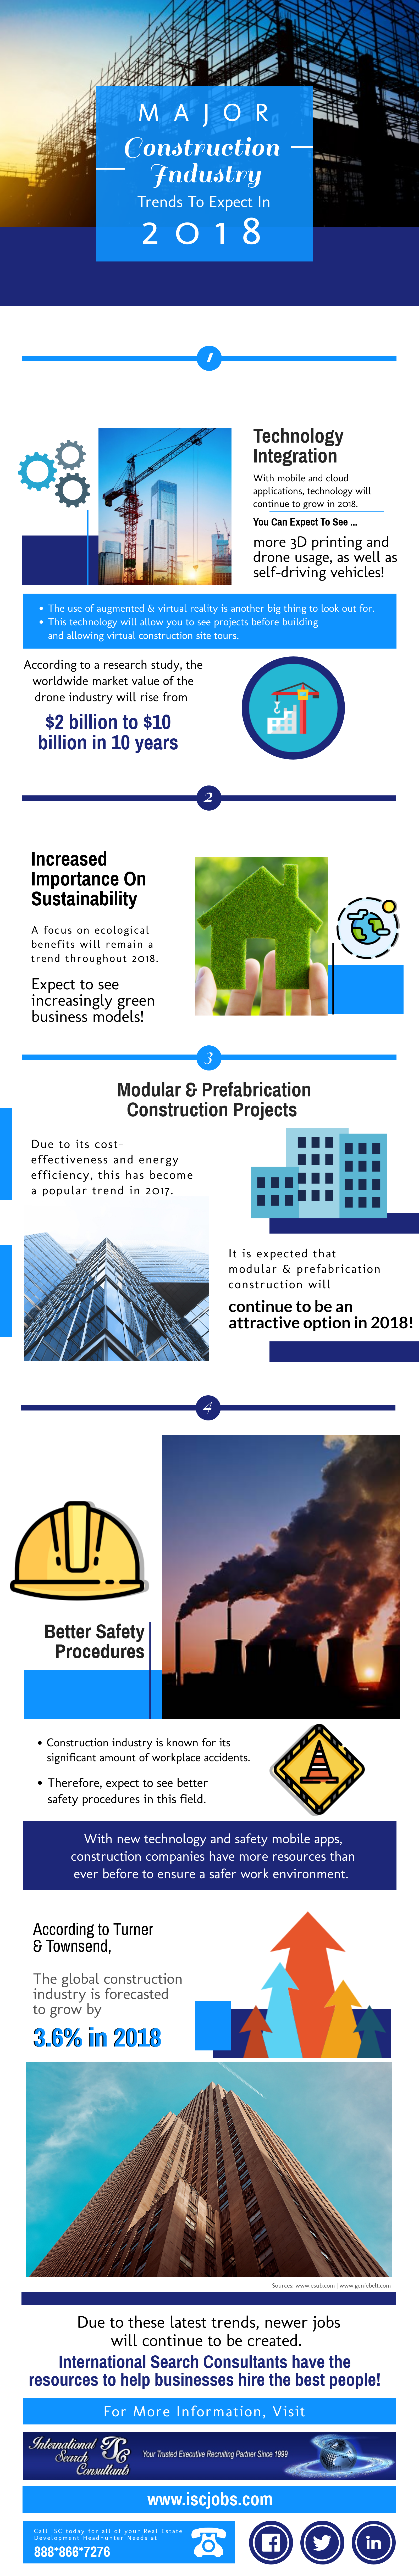 Infographic ; Real Estate & Construction Trends for 2018